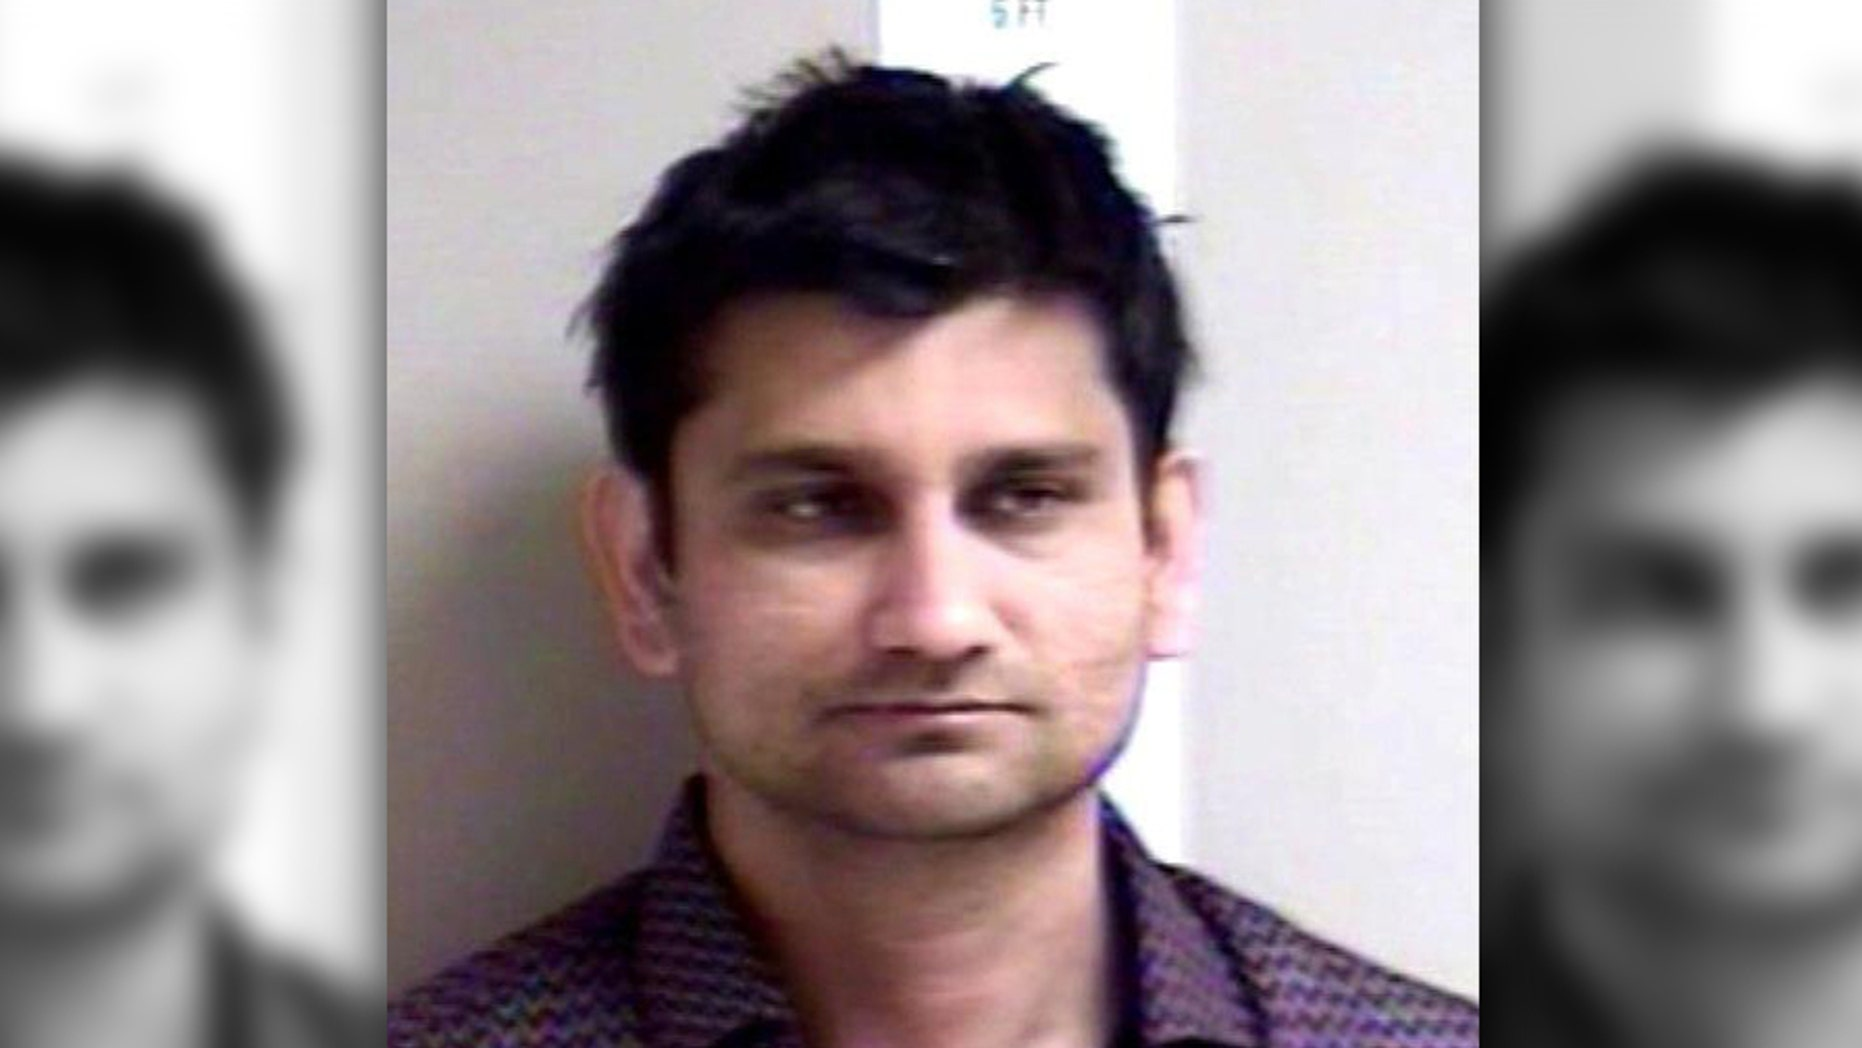 Prabhu Ramamoorthy of Rochester Hills, Mich., was convicted of sexual assault.